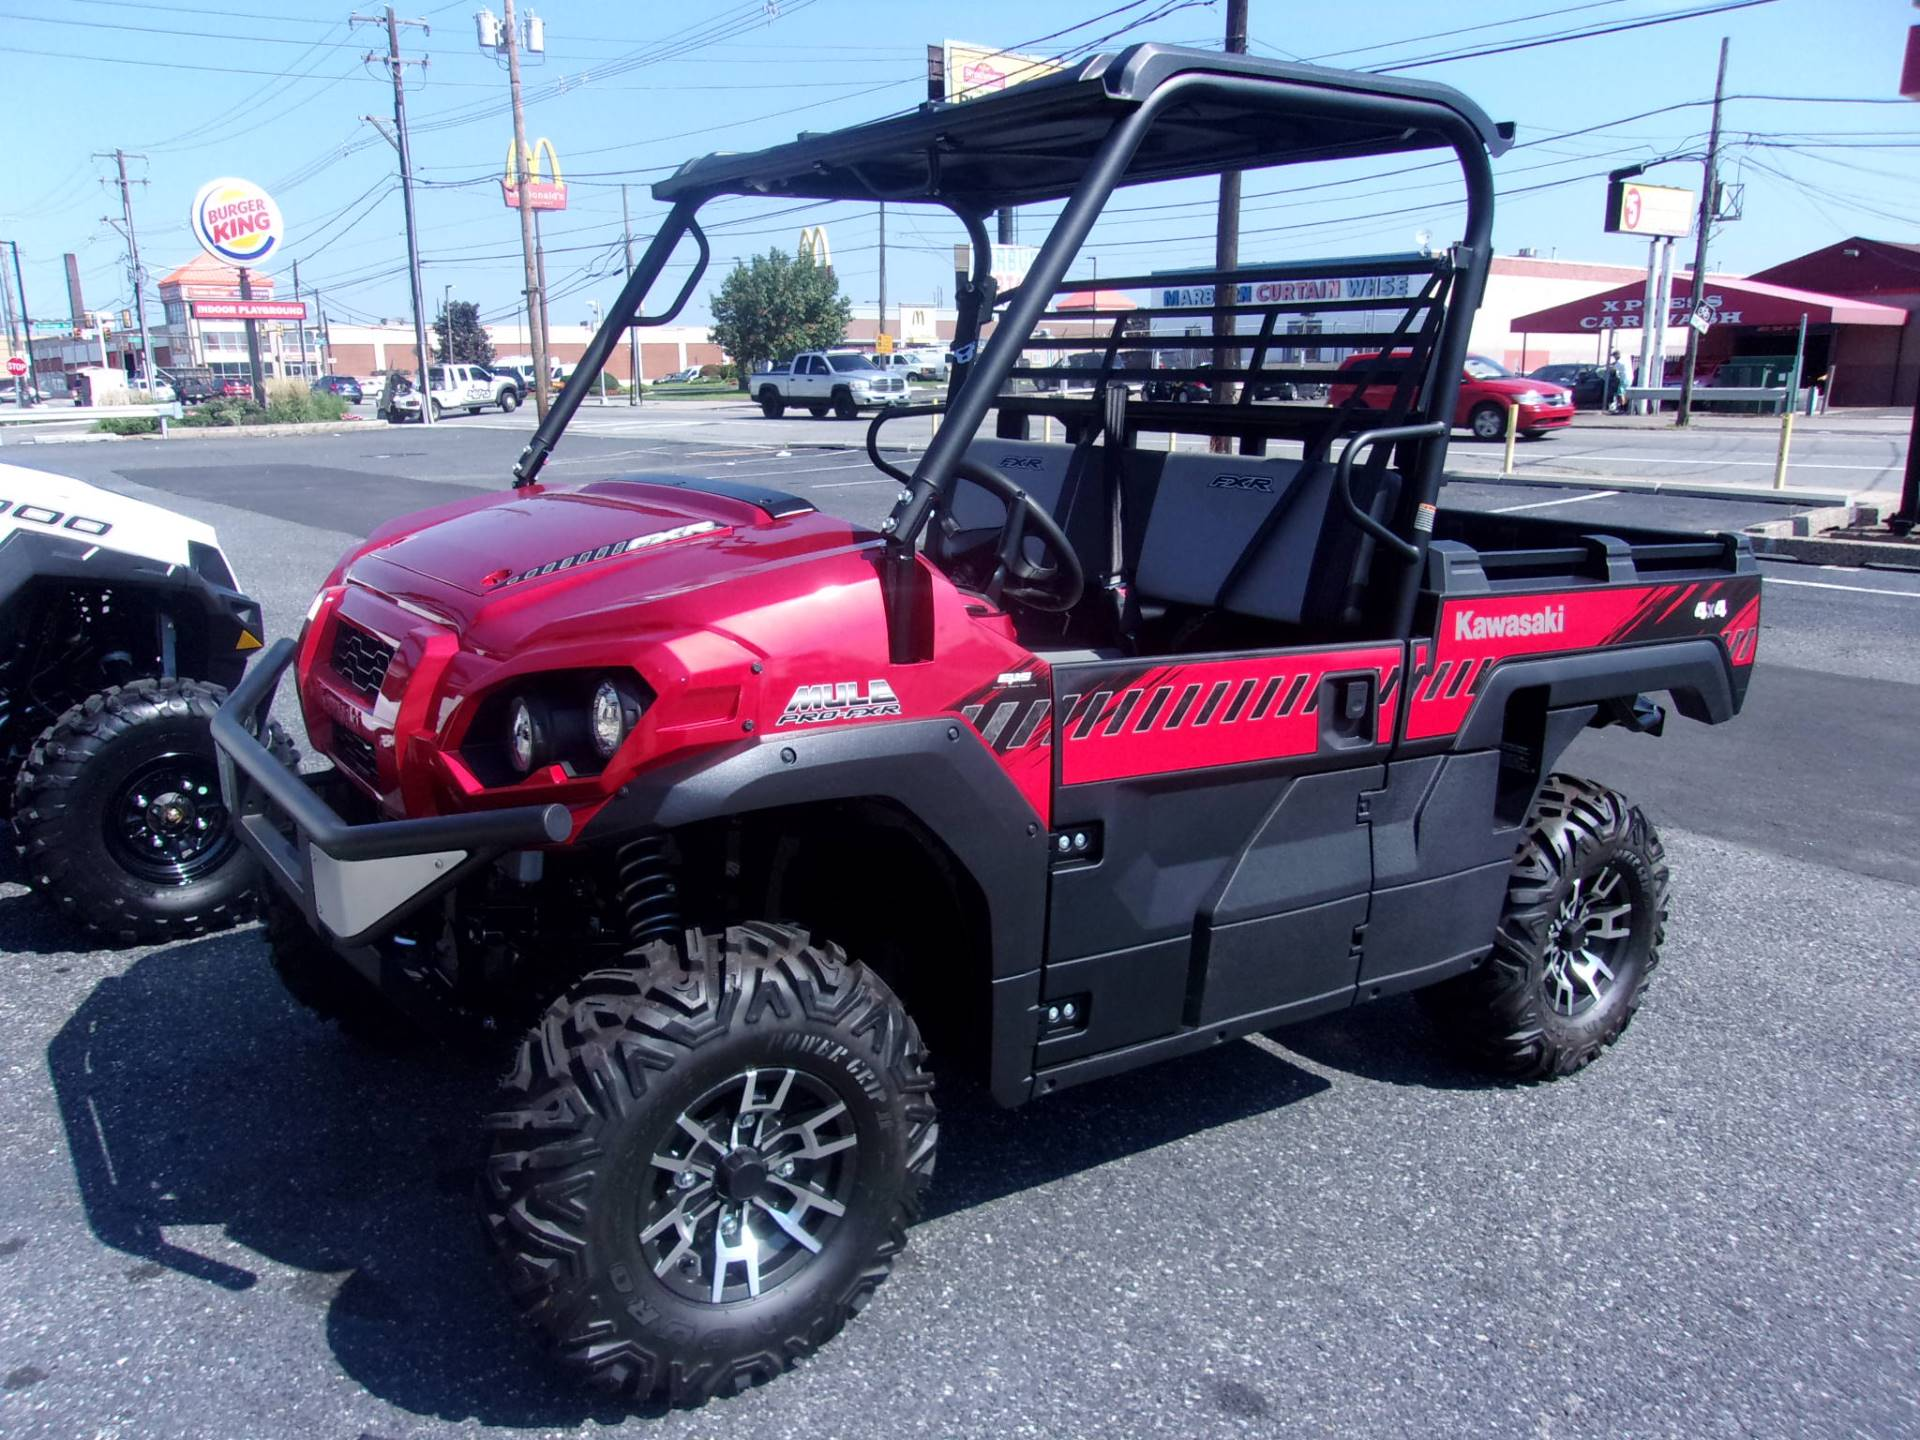 2018 Kawasaki Mule PRO-FXR in Philadelphia, Pennsylvania - Photo 1